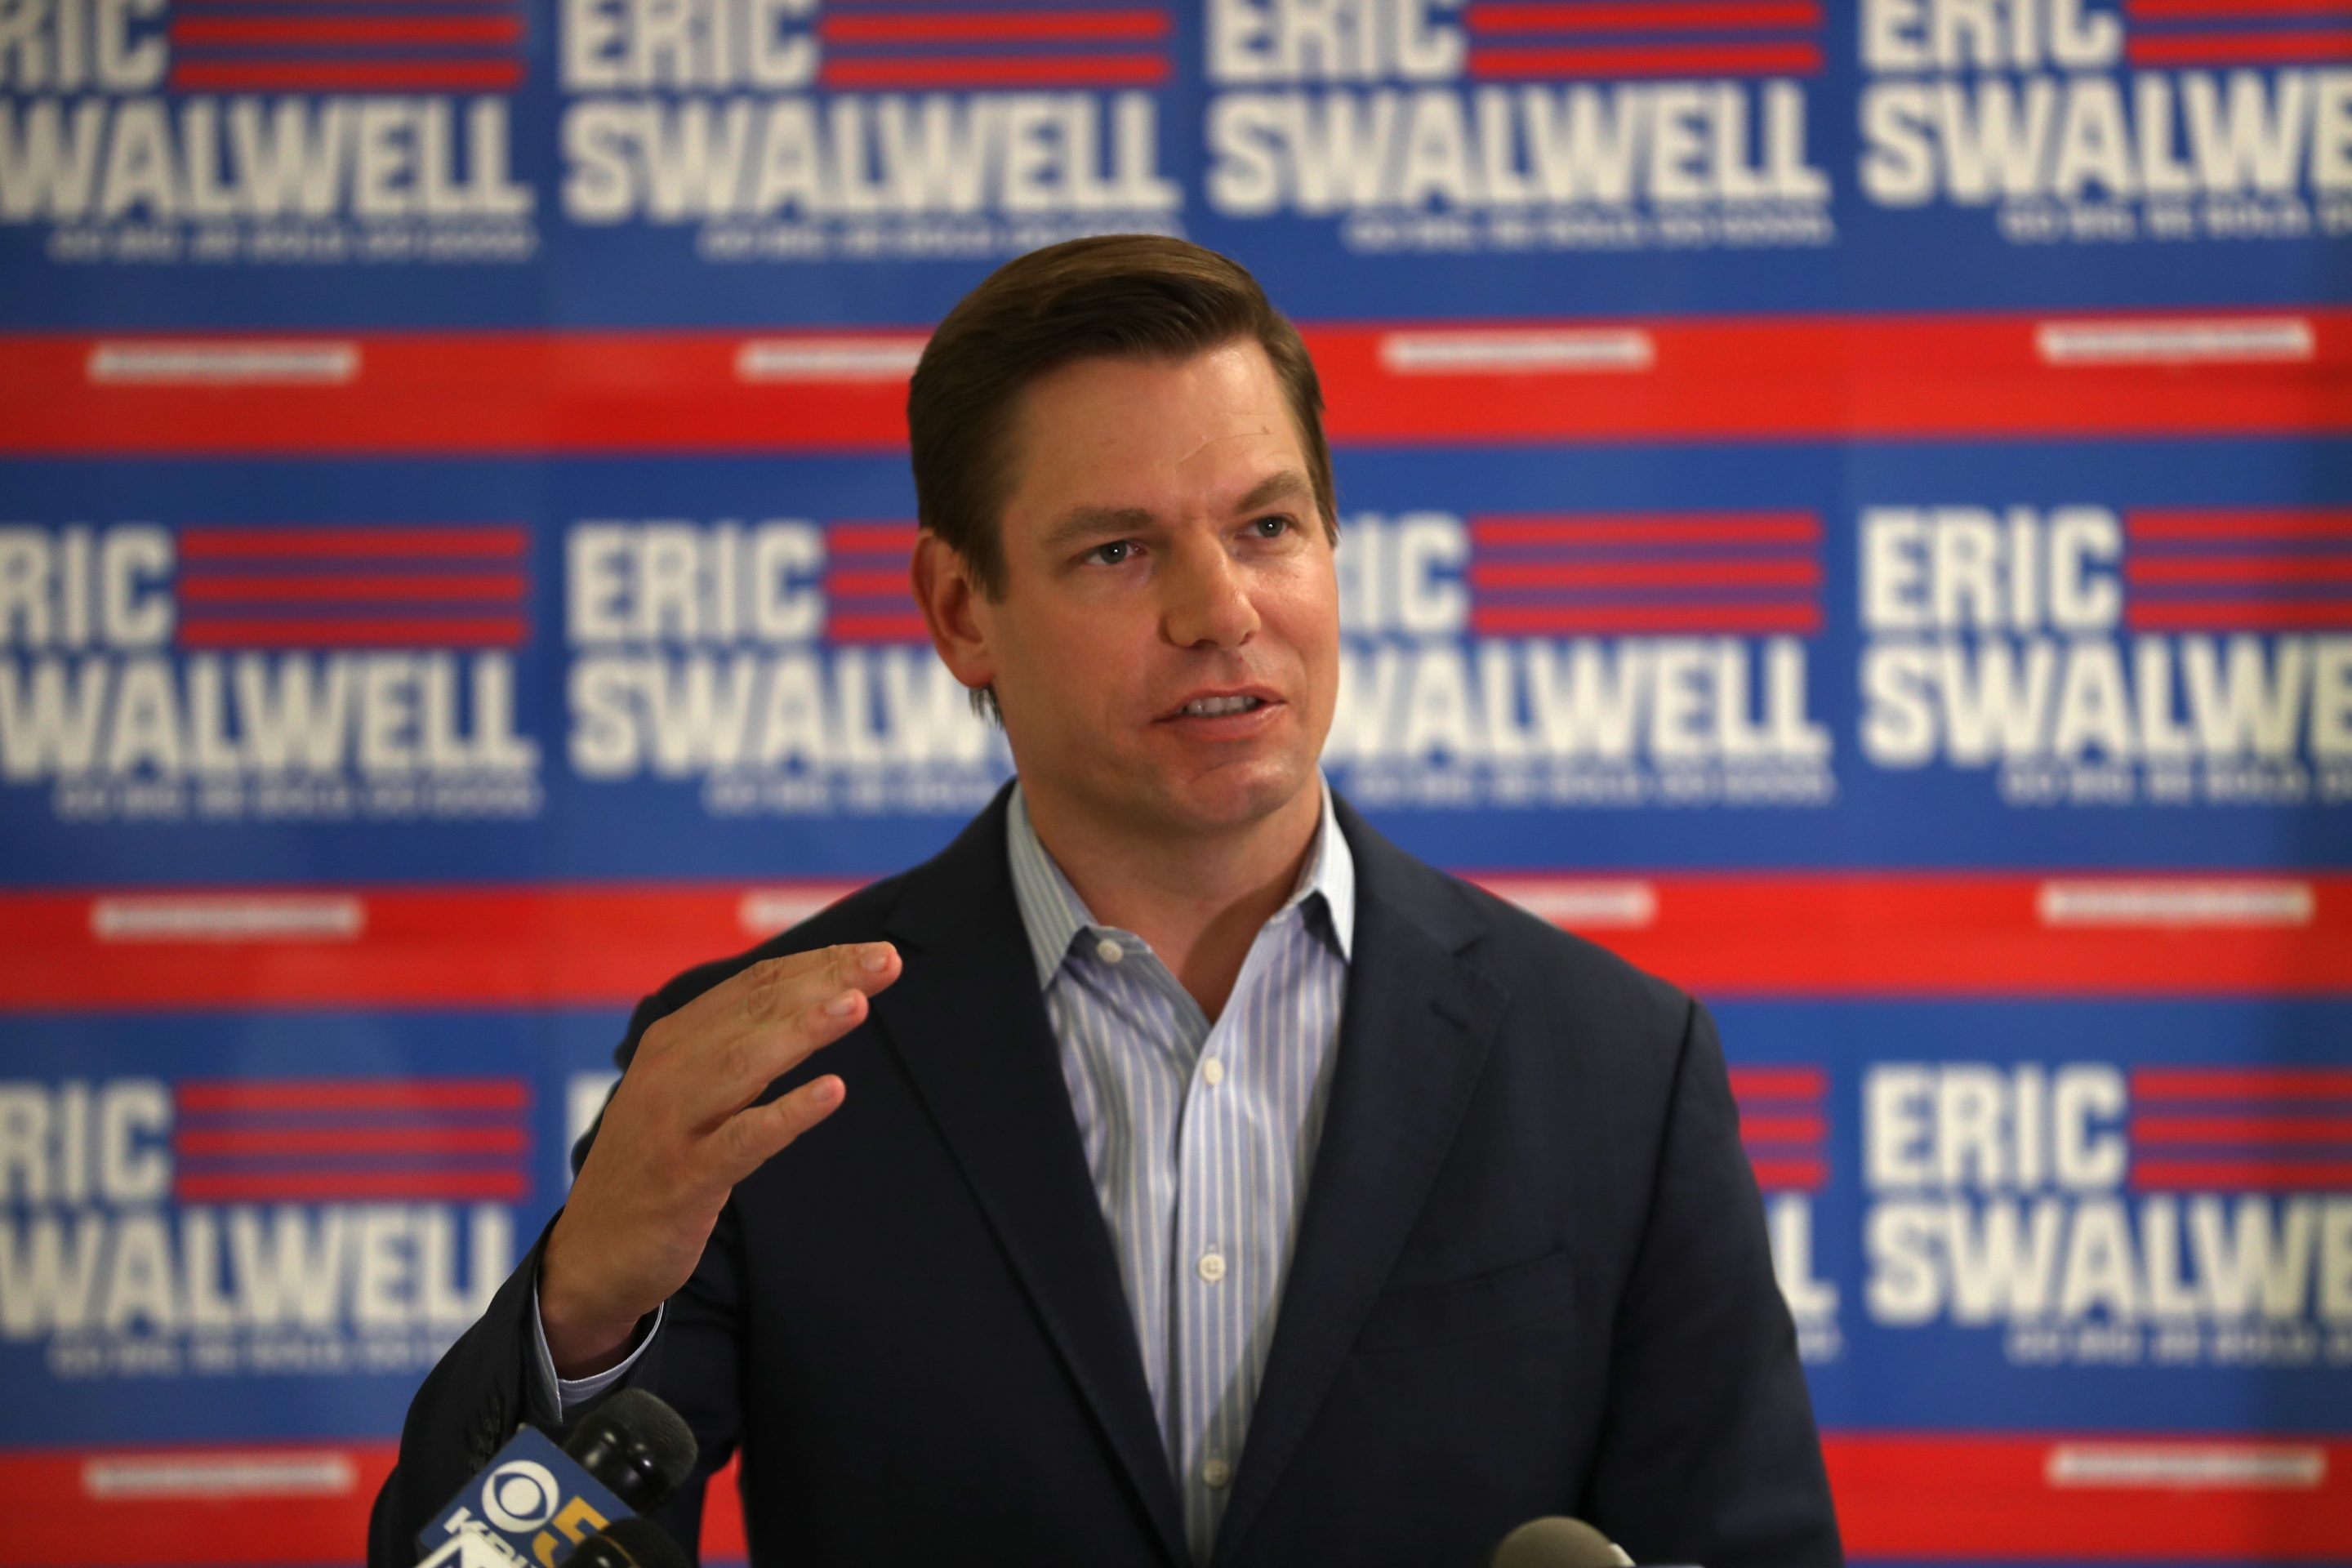 Democratic presidential candidate U.S. Rep. Eric Swalwell (D-CA) speaks during a press conference at his campaign headquarters where he announced that he is dropping out of the presidential race on July 08, 2019 in Dublin, California.